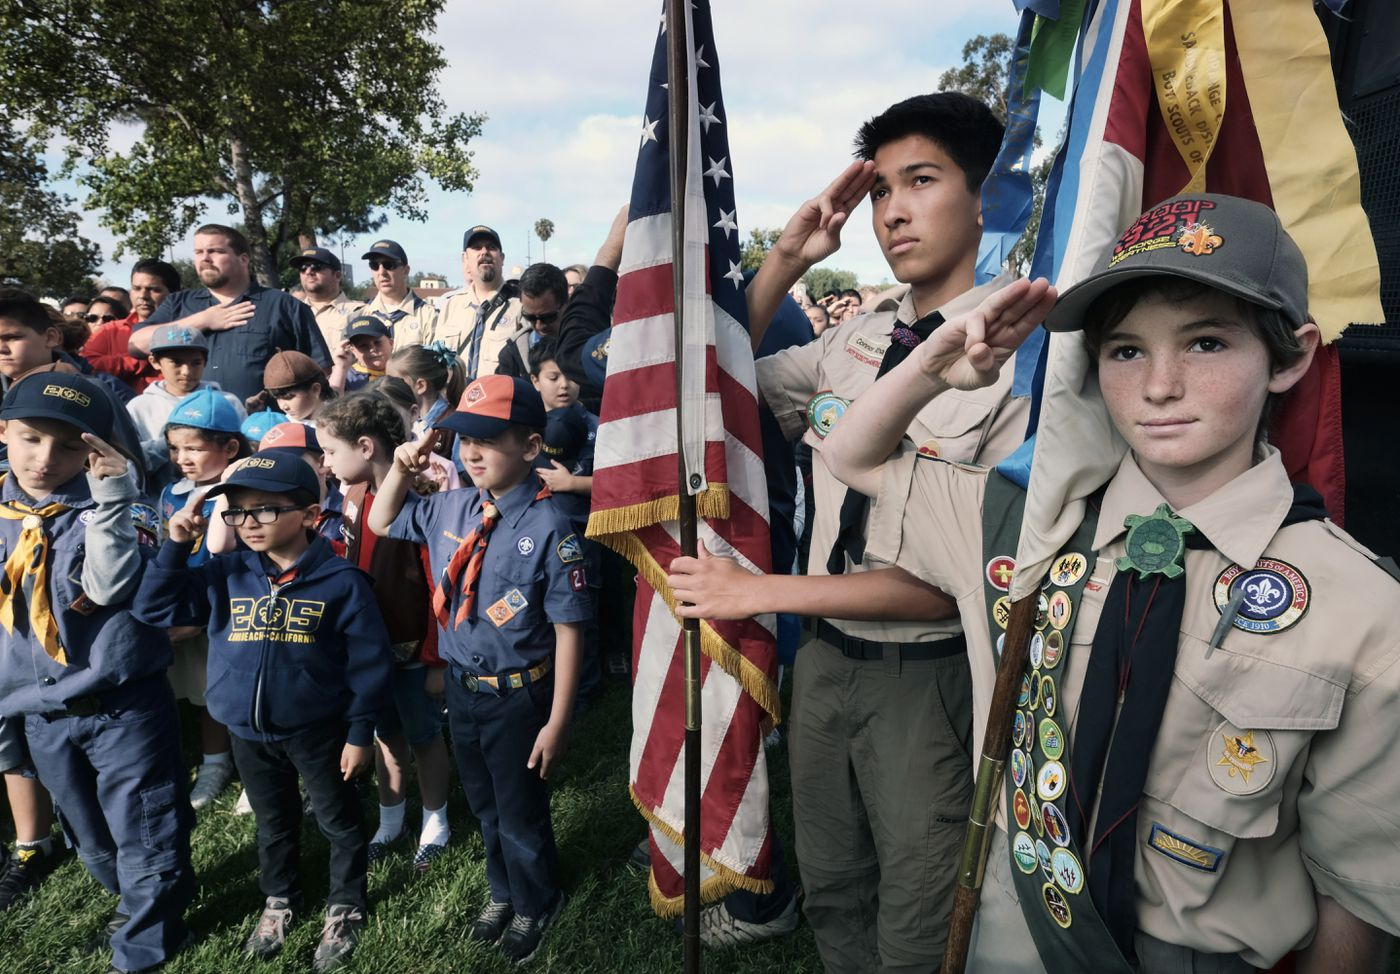 Boy Scouts files for bankruptcy due to sex-abuse lawsuits